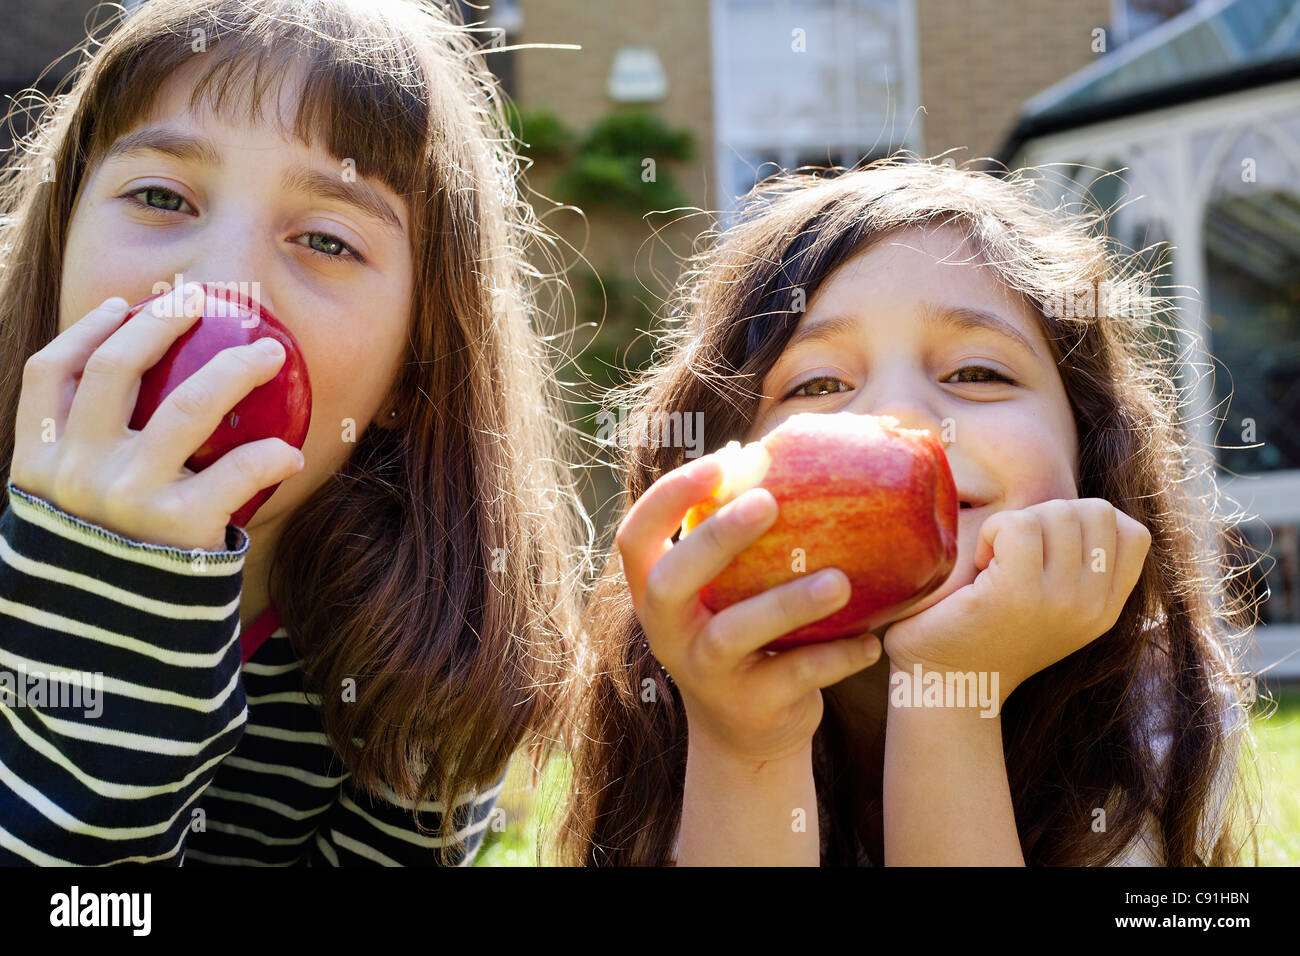 Girls eating apples outdoors - Stock Image